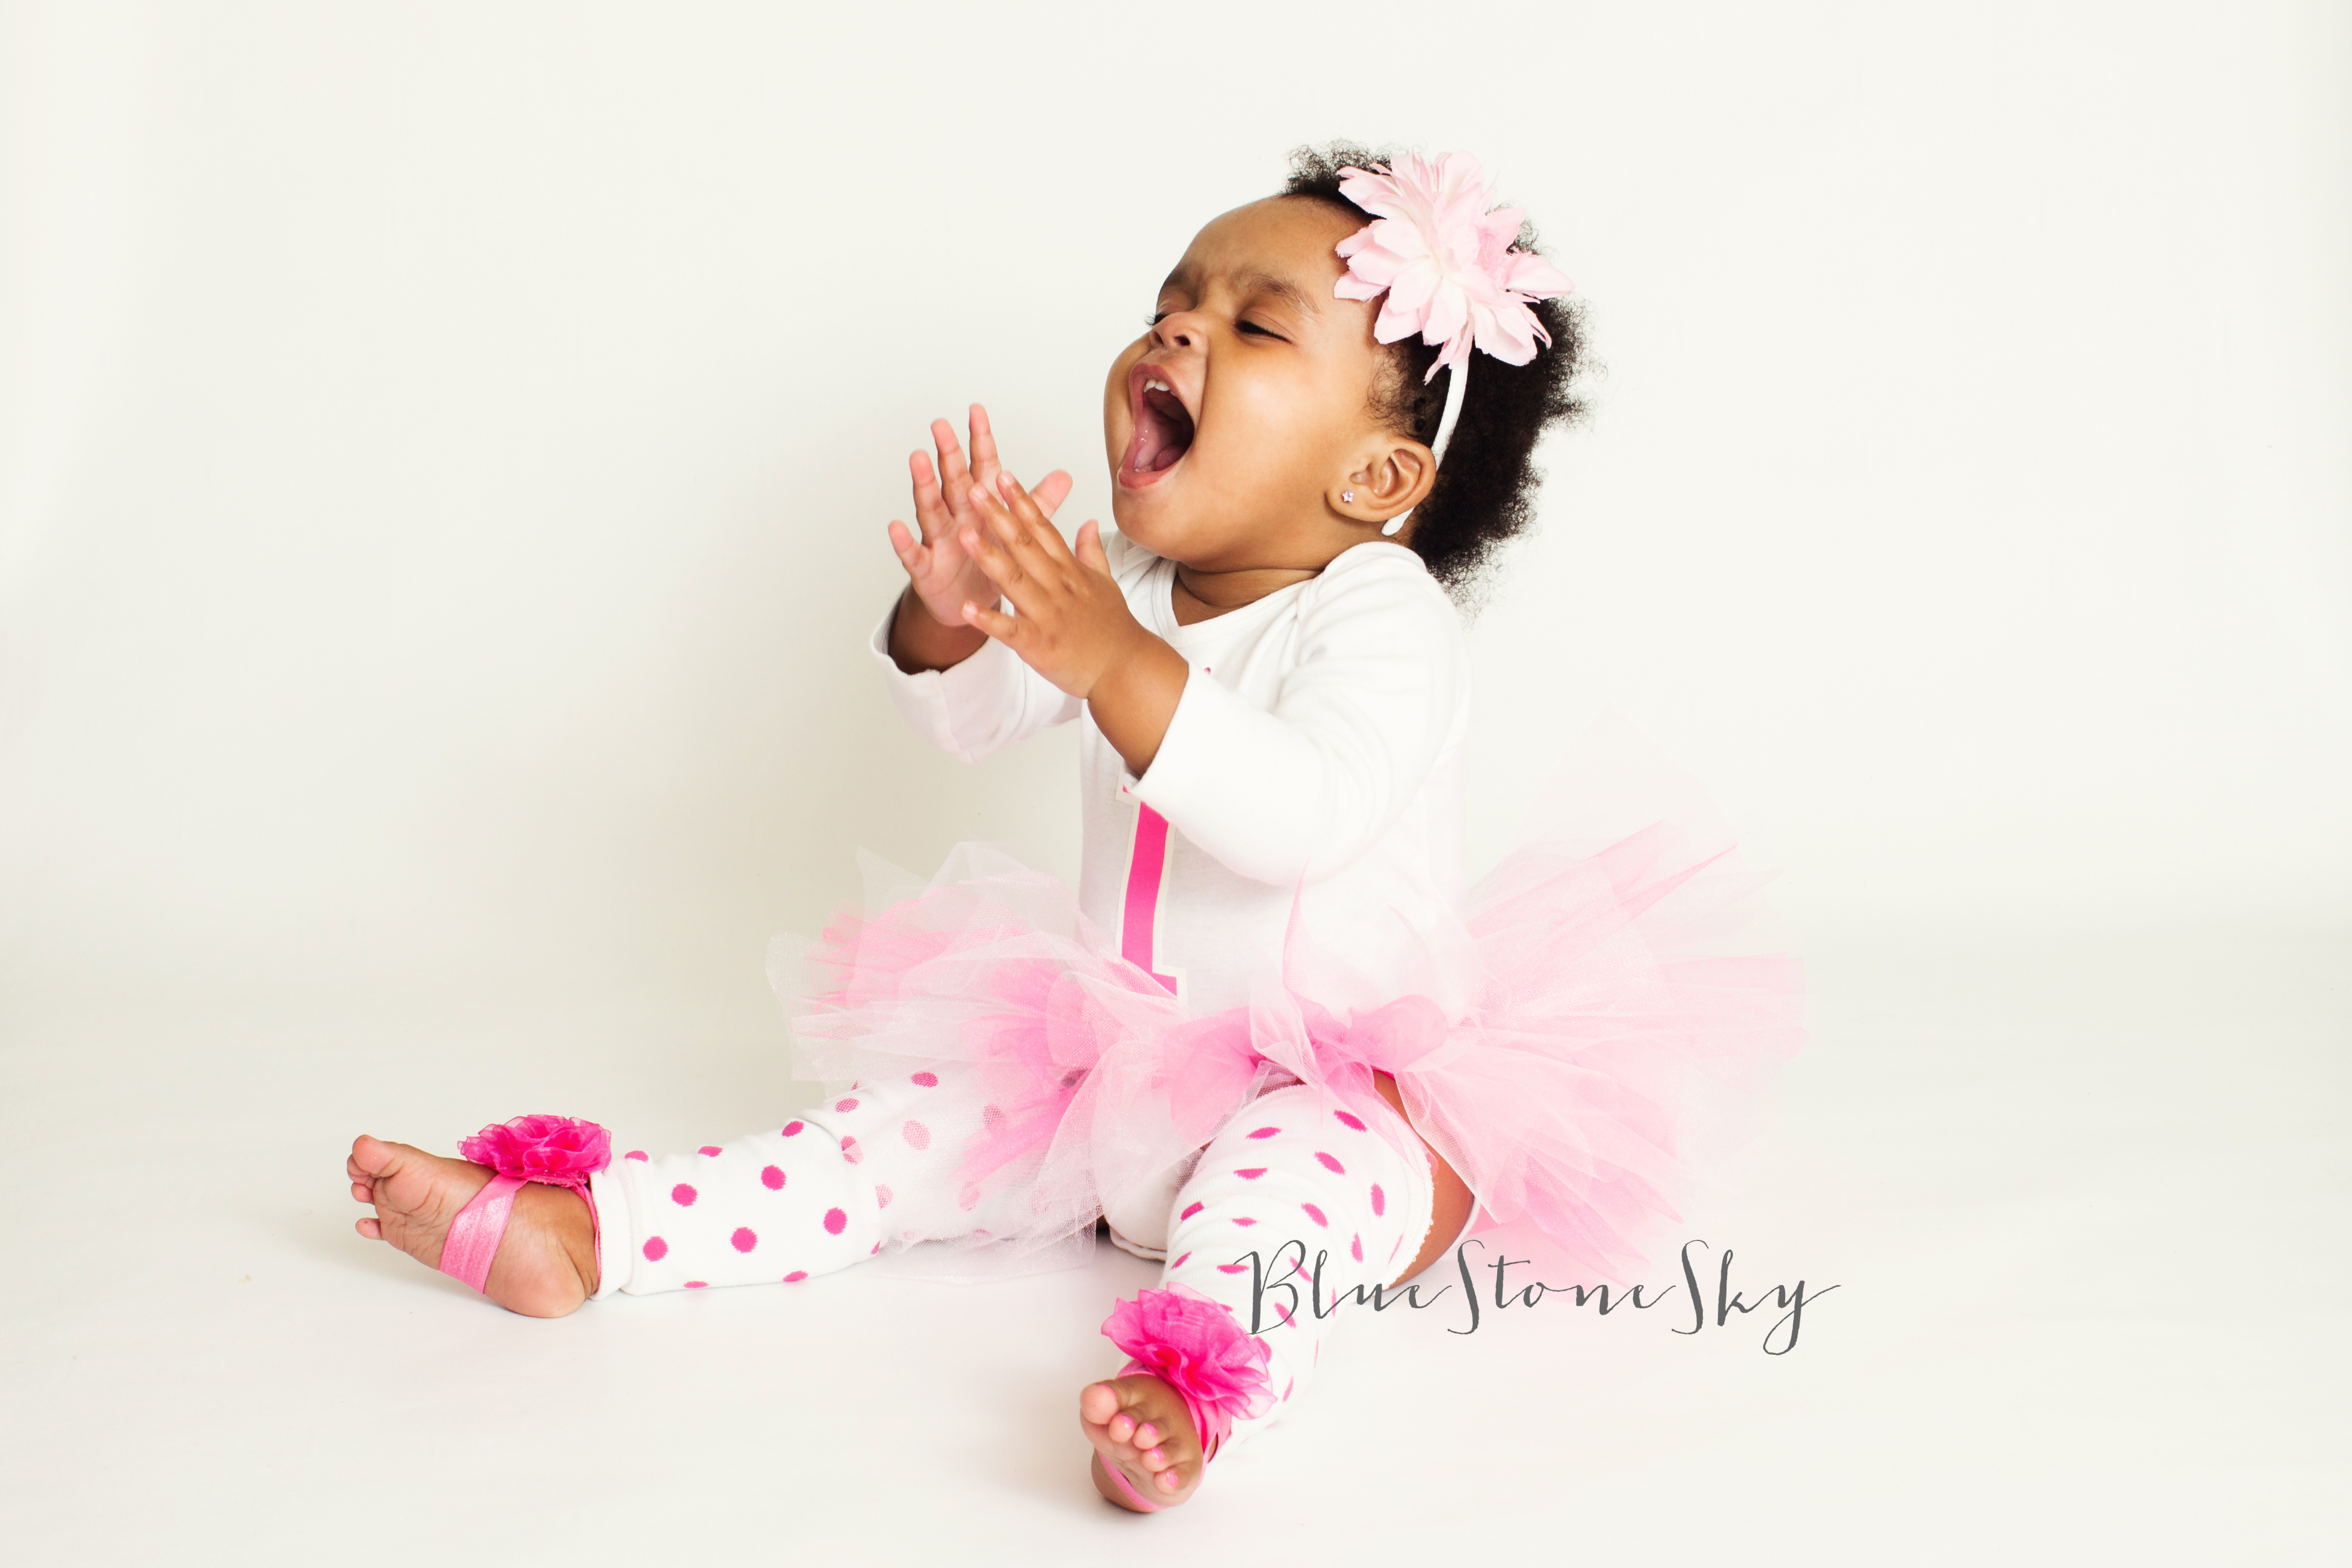 Pretty in Pink - BlueStoneSky Photography